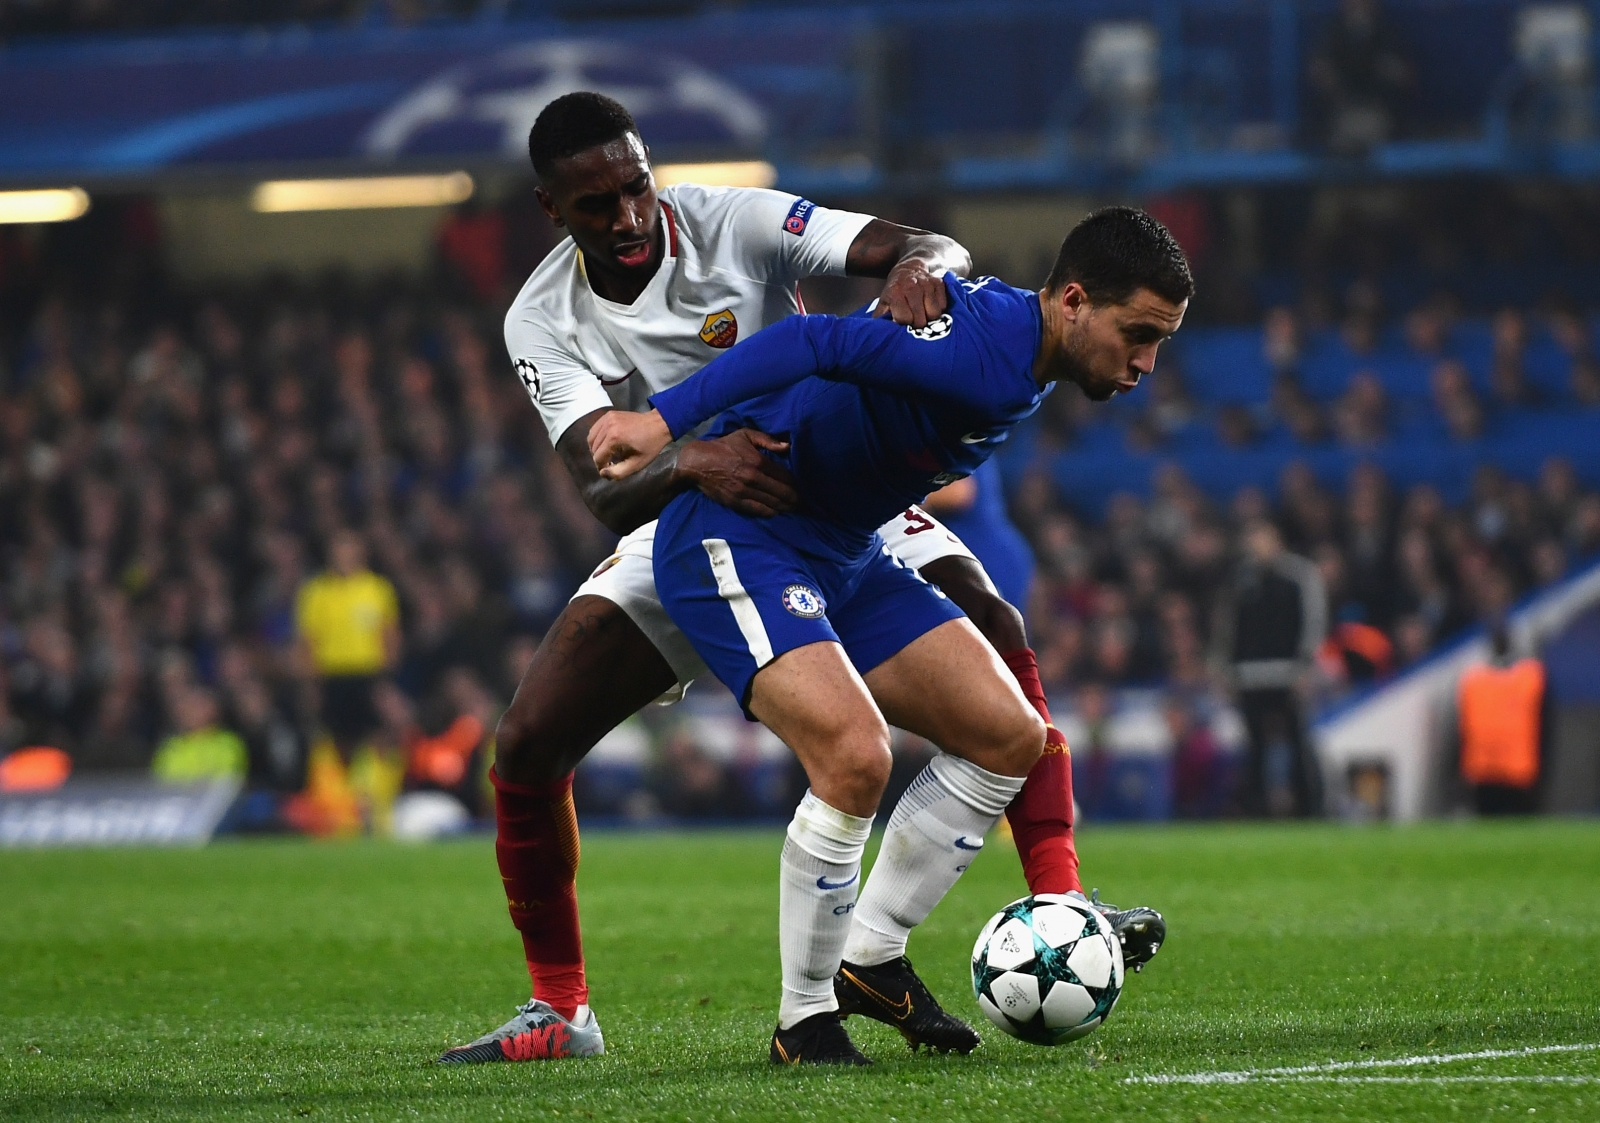 Chelsea's Eden Hazard: 'I want to win the Champions League'